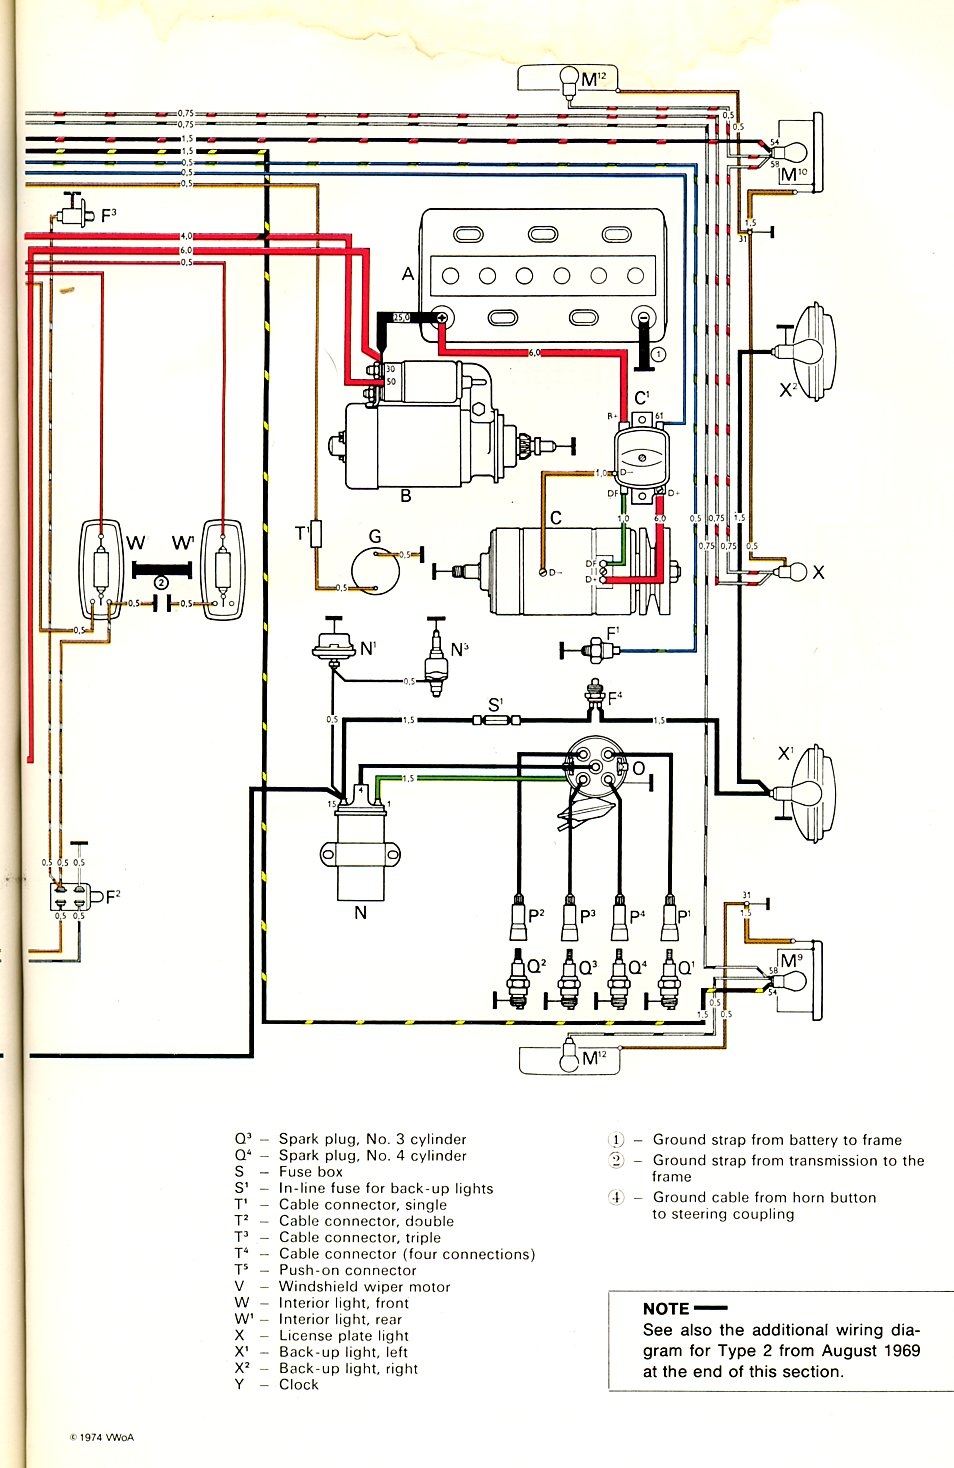 1972 vw bus wiring diagram toro wheel horse 520h thesamba.com :: type 2 diagrams